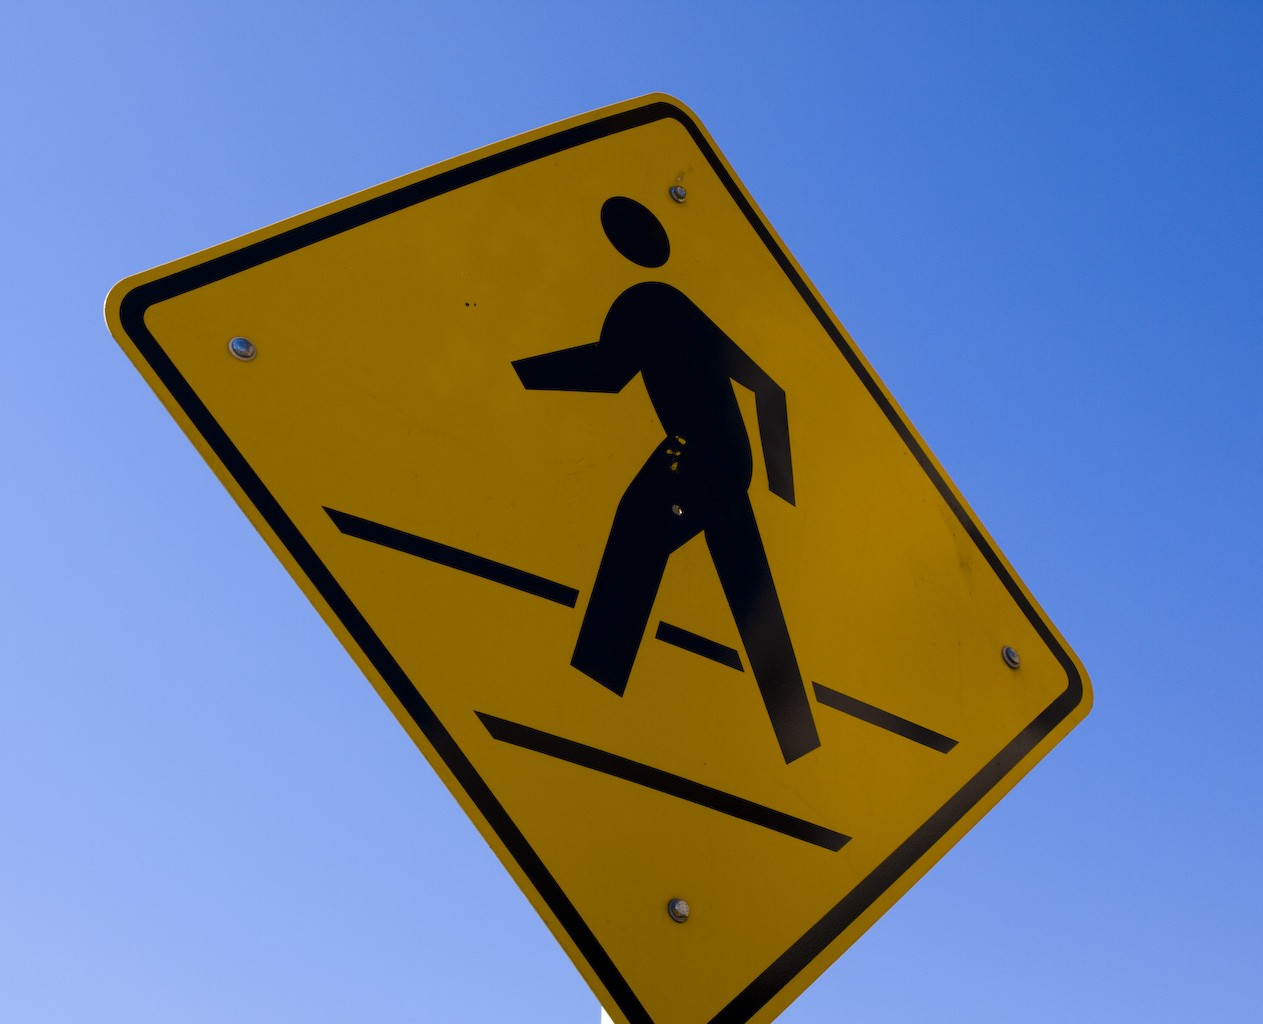 Over 50 percent of jaywalking tickets in Orange County are